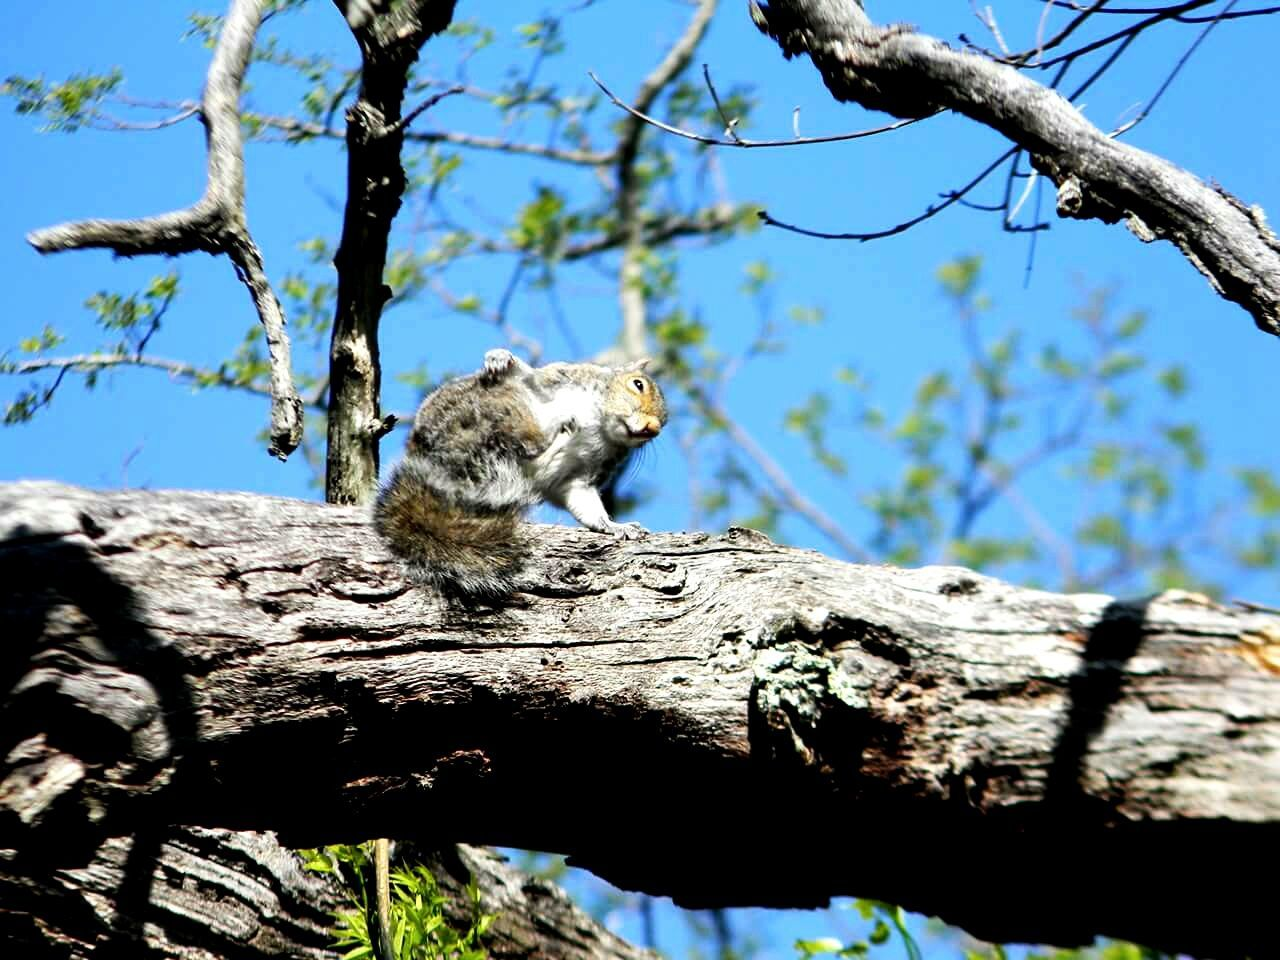 tree, branch, low angle view, animals in the wild, one animal, sunlight, animal wildlife, day, outdoors, animal themes, nature, no people, tree trunk, mammal, sky, blue, beauty in nature, close-up